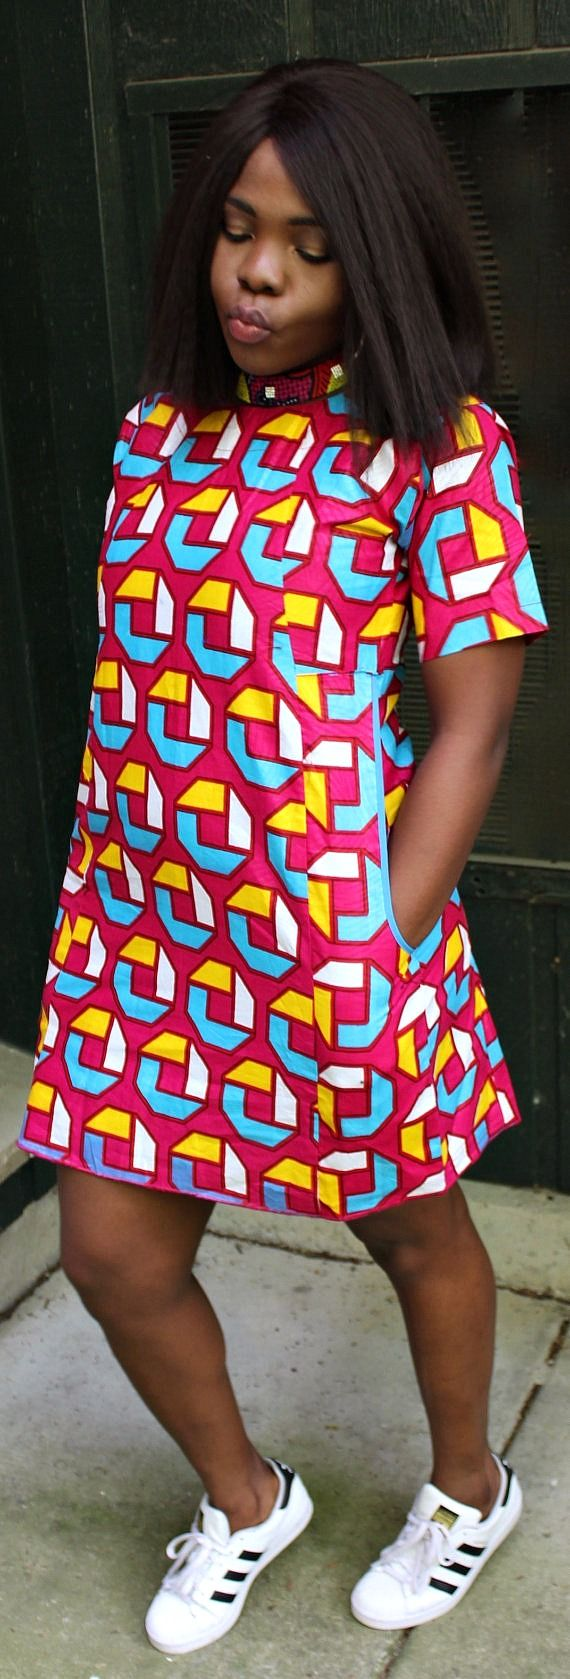 Free ankara shirt dress perfect free dress for any occasion can be